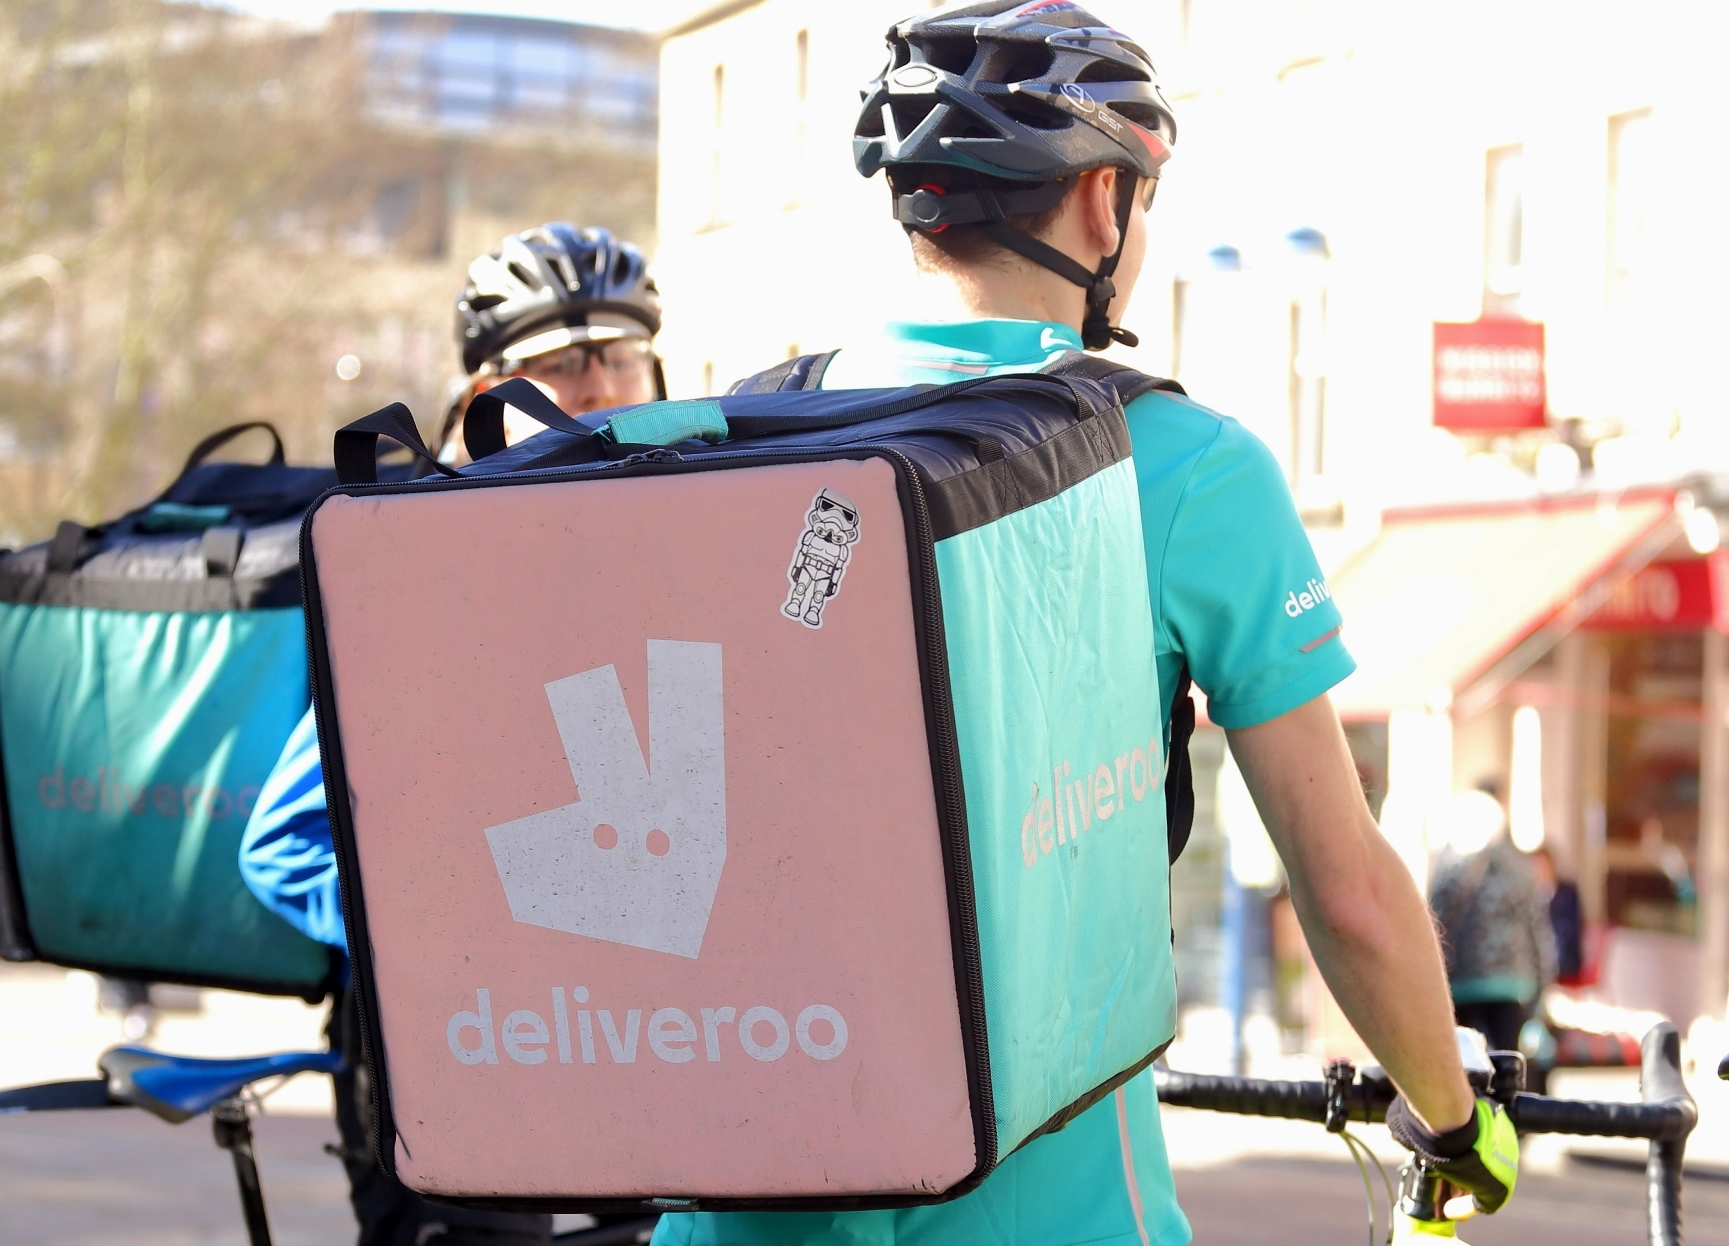 deliveroo riders on bikes